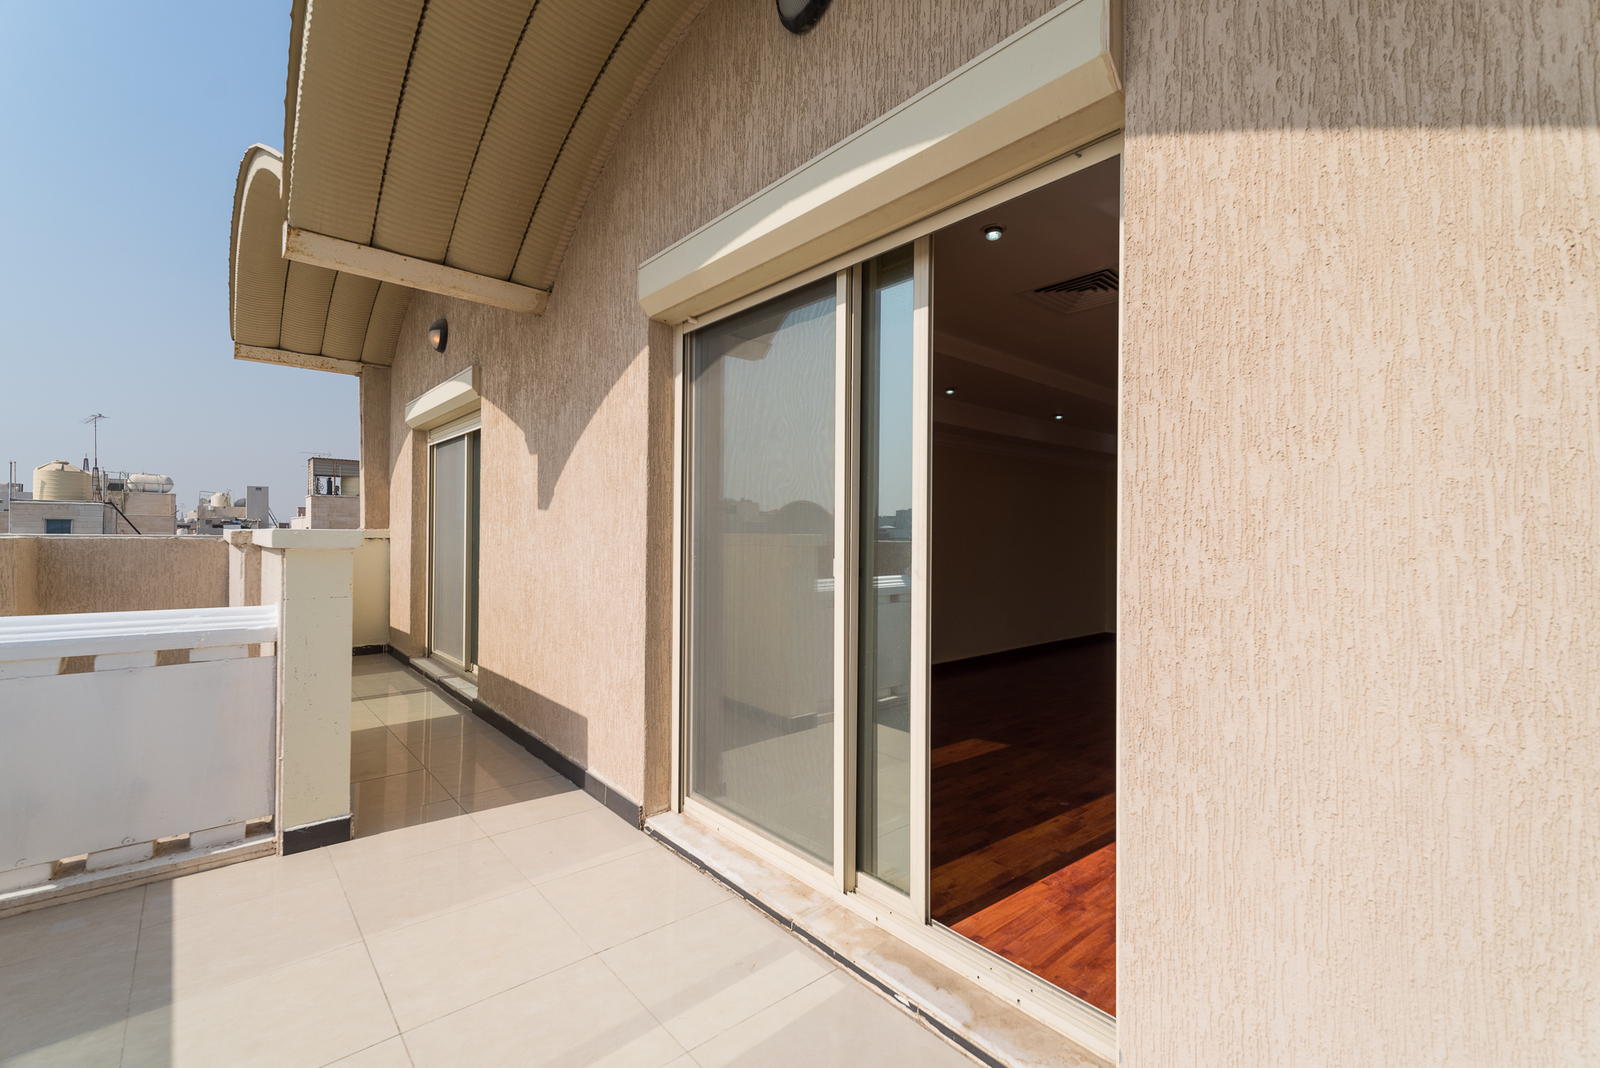 Salwa – older, unfurnished three bedroom apartment w/large balcony